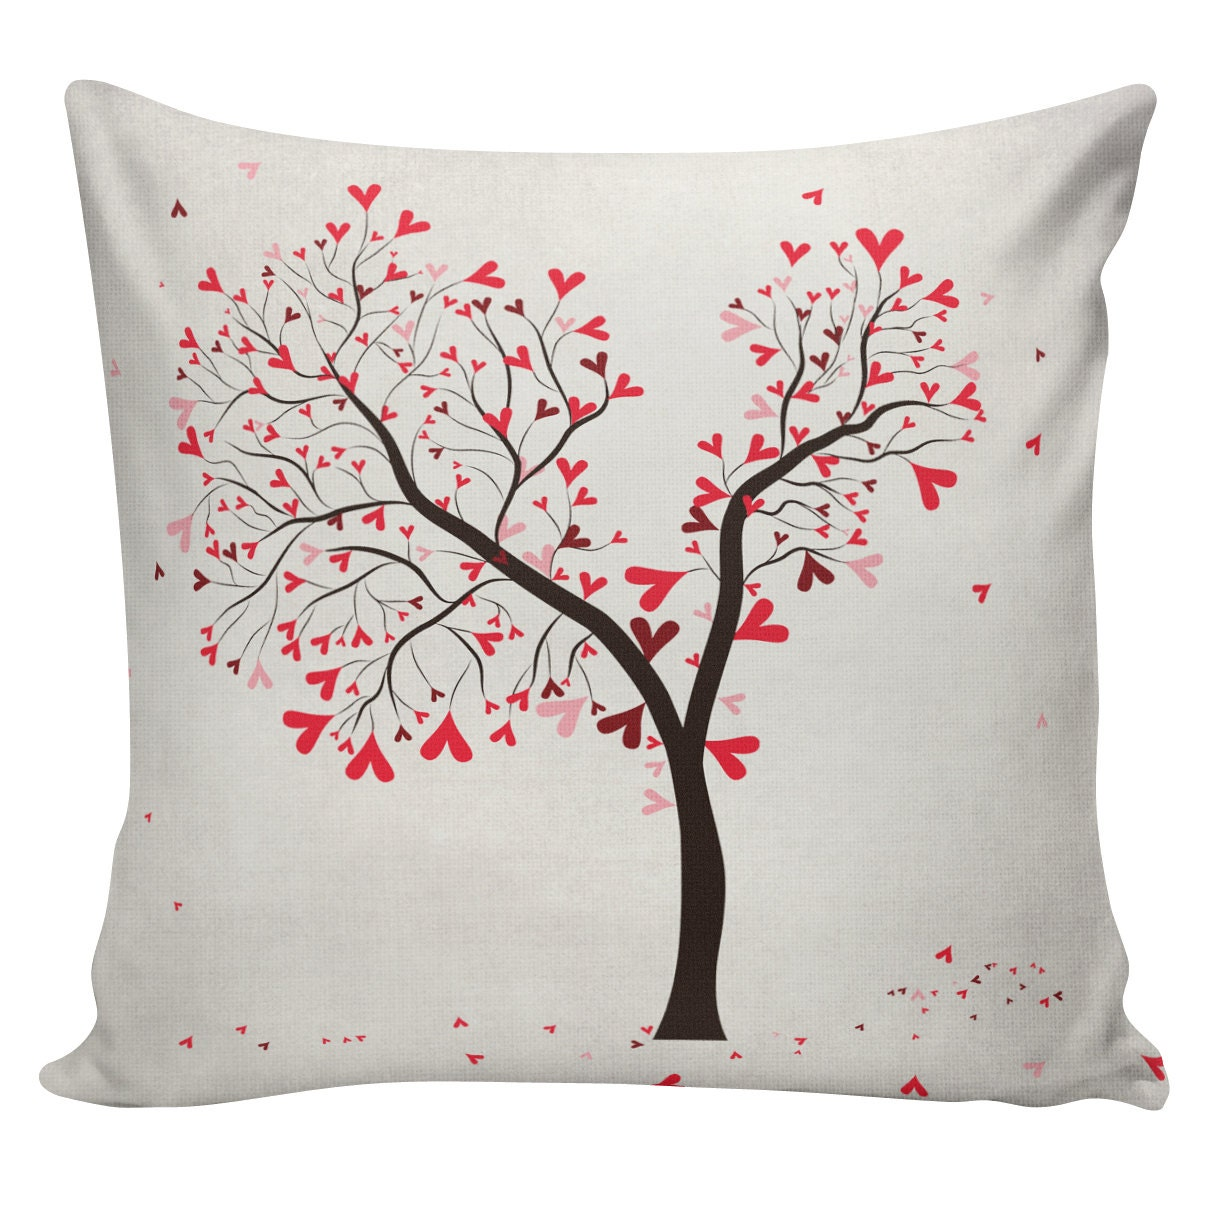 Love Pillow Cover Cotton Canvas Throw Pillow 18 inch square